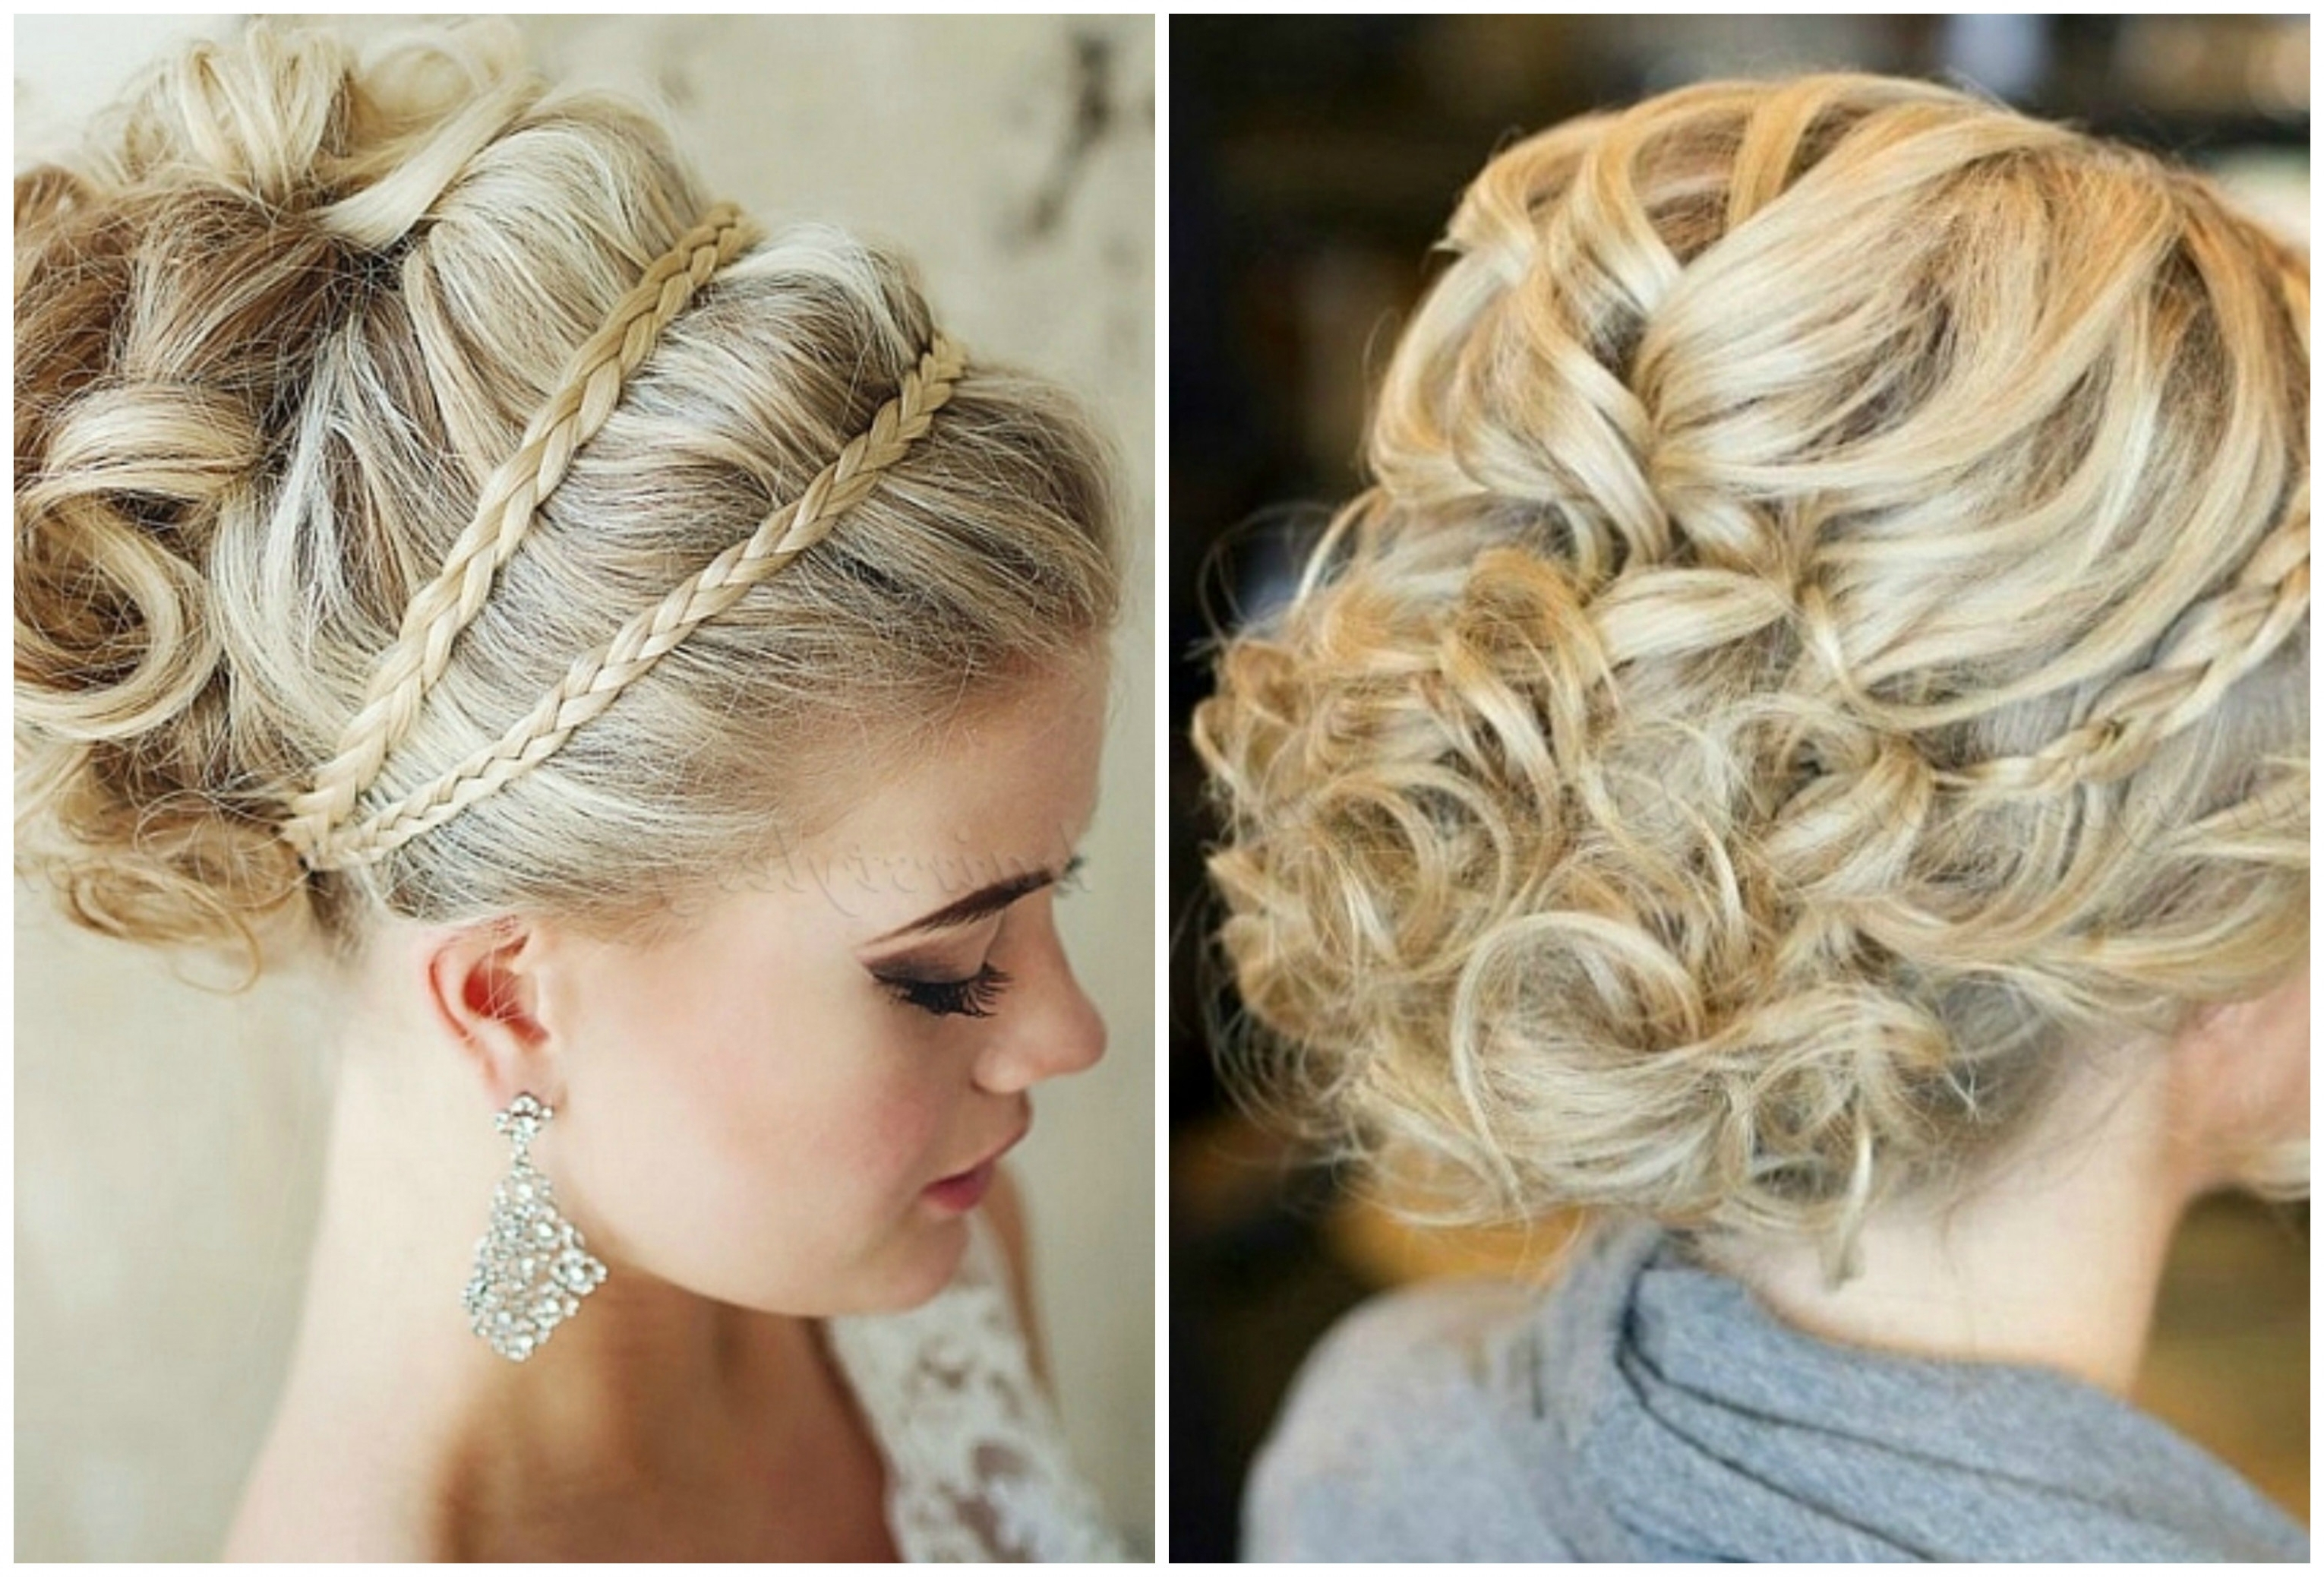 Updo Hairstyles Blonde Throughout Blonde Updo Hairstyles (Gallery 8 of 15)